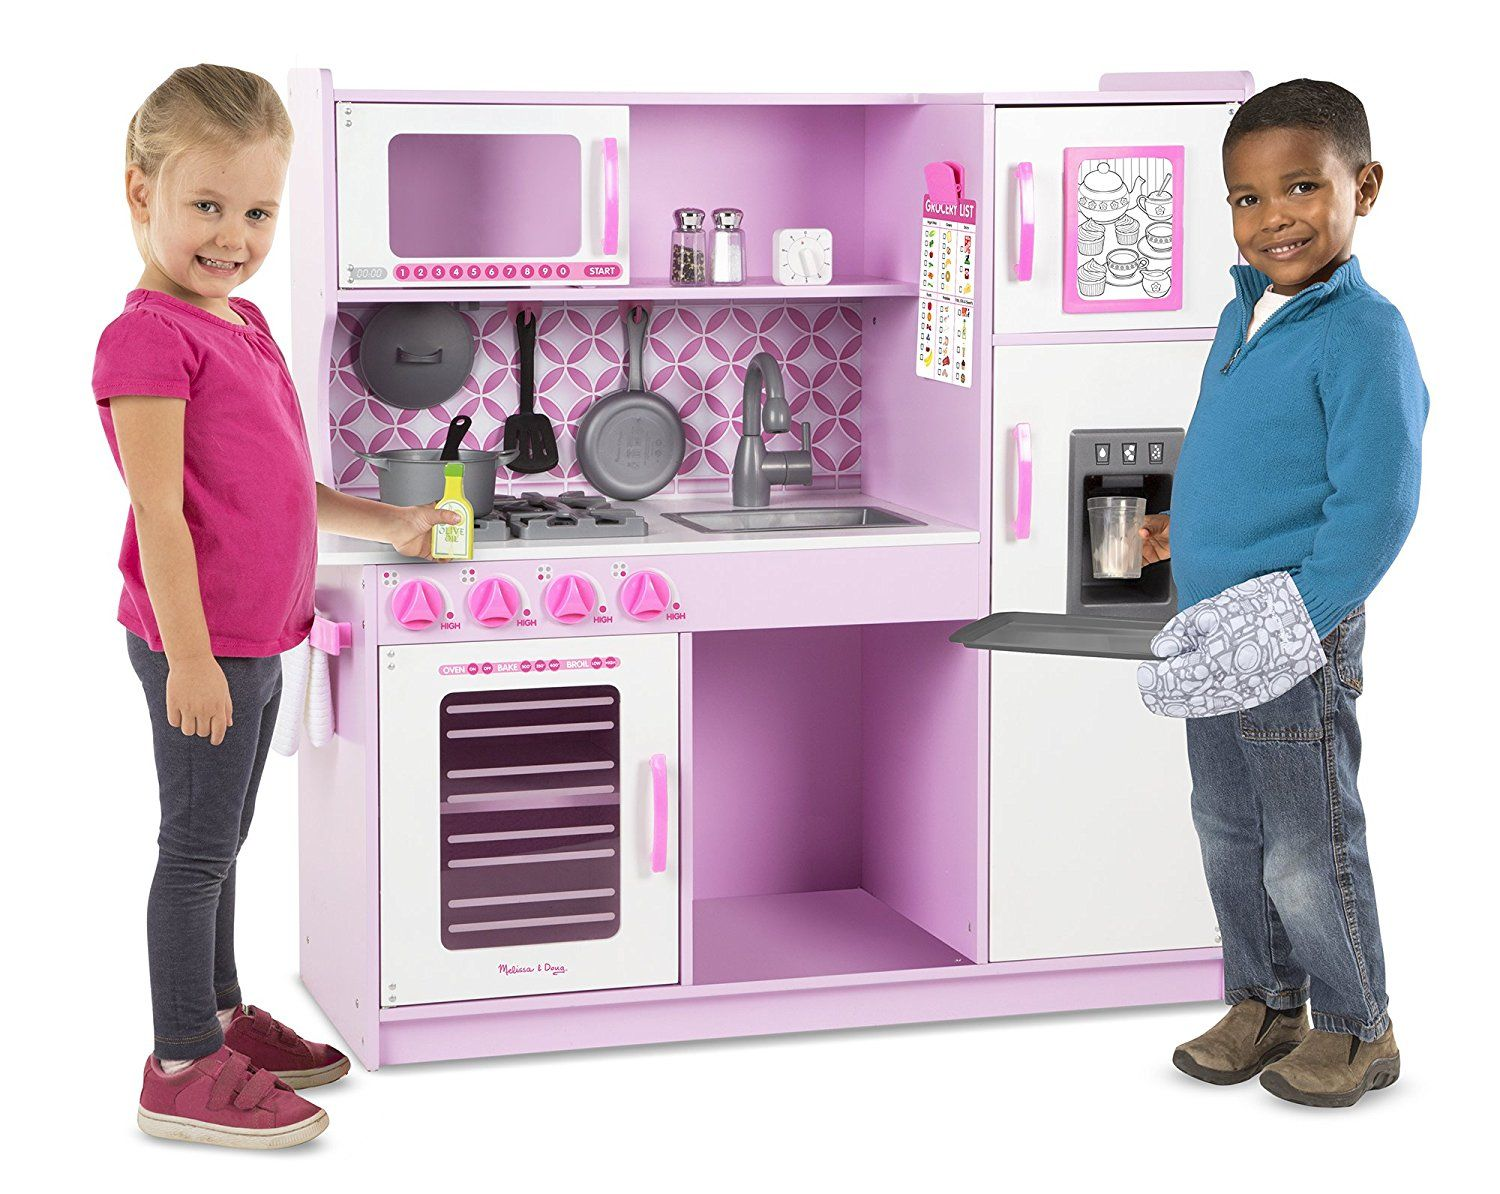 gift ideas for girls for christmas and birthday - the best toys for